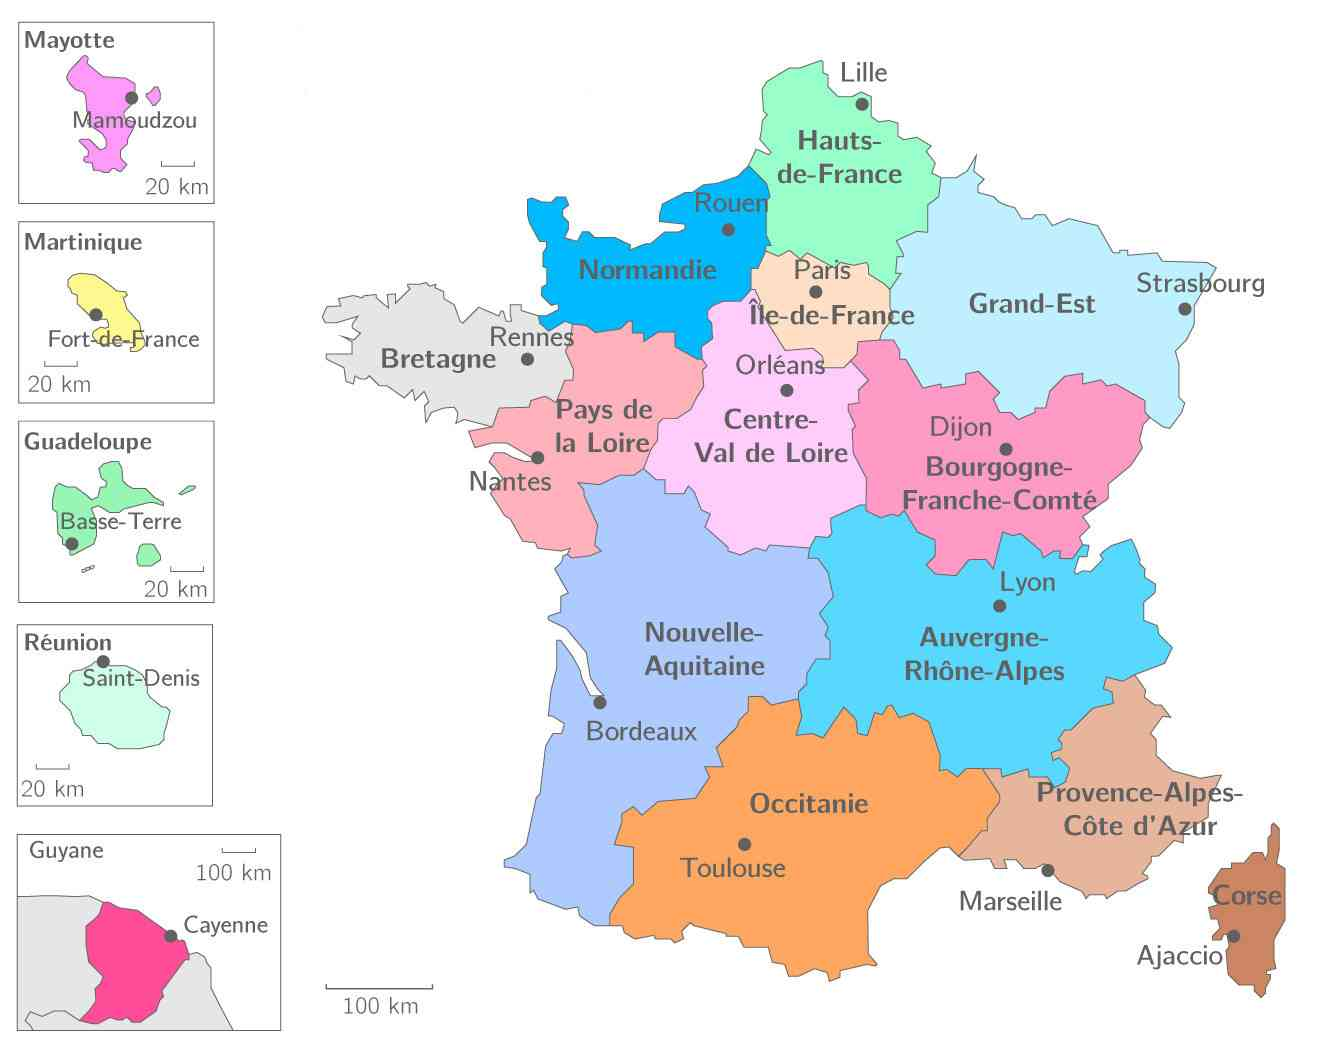 carte de france regions et departements francais